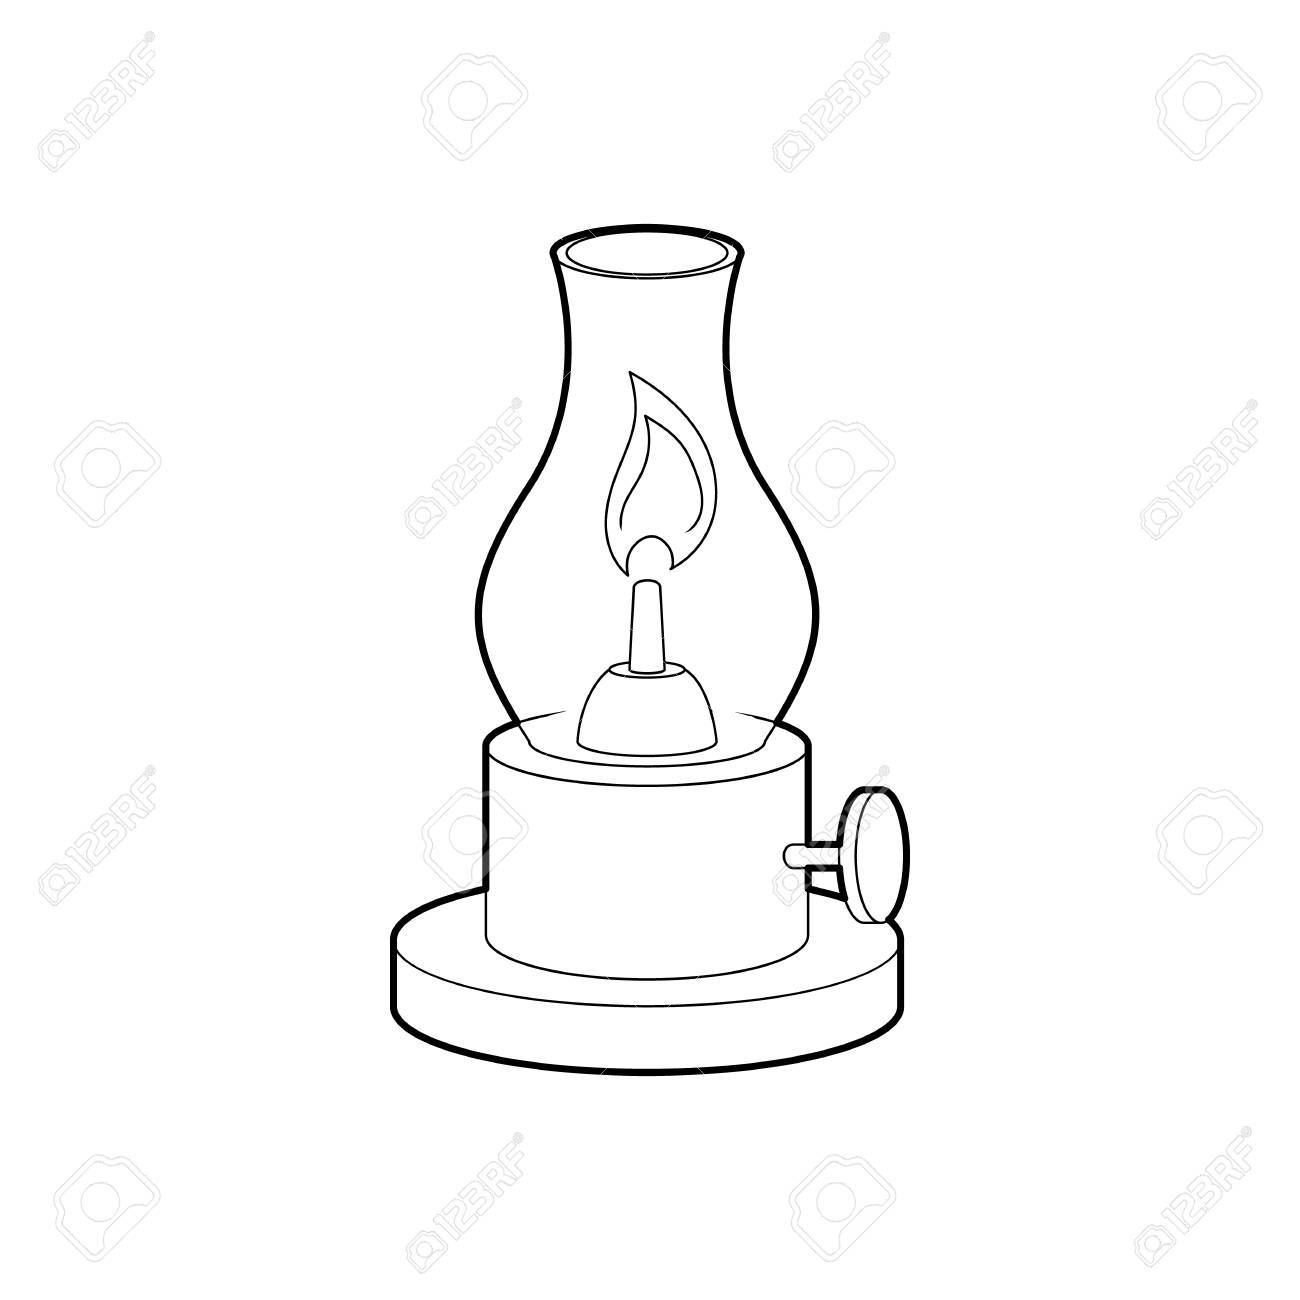 Gas Lamp Diagram Trusted Wiring A Icon In Outline Style Isolated On White Background